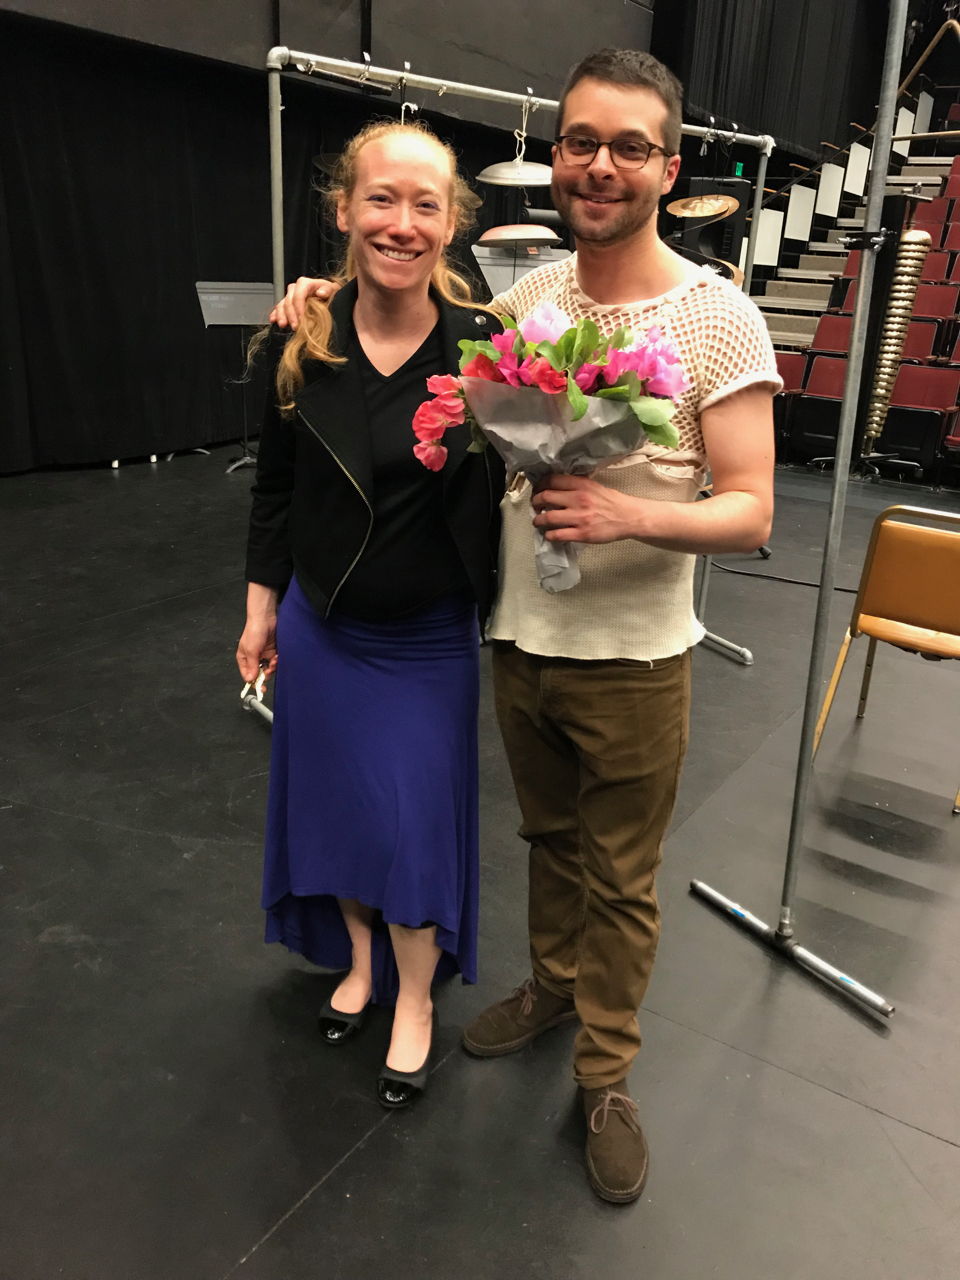 w/ my mentor, Dr. Bonnie Whiting. After my Master's Degree recital, June 2nd, 2018. University of Washington in Seattle.